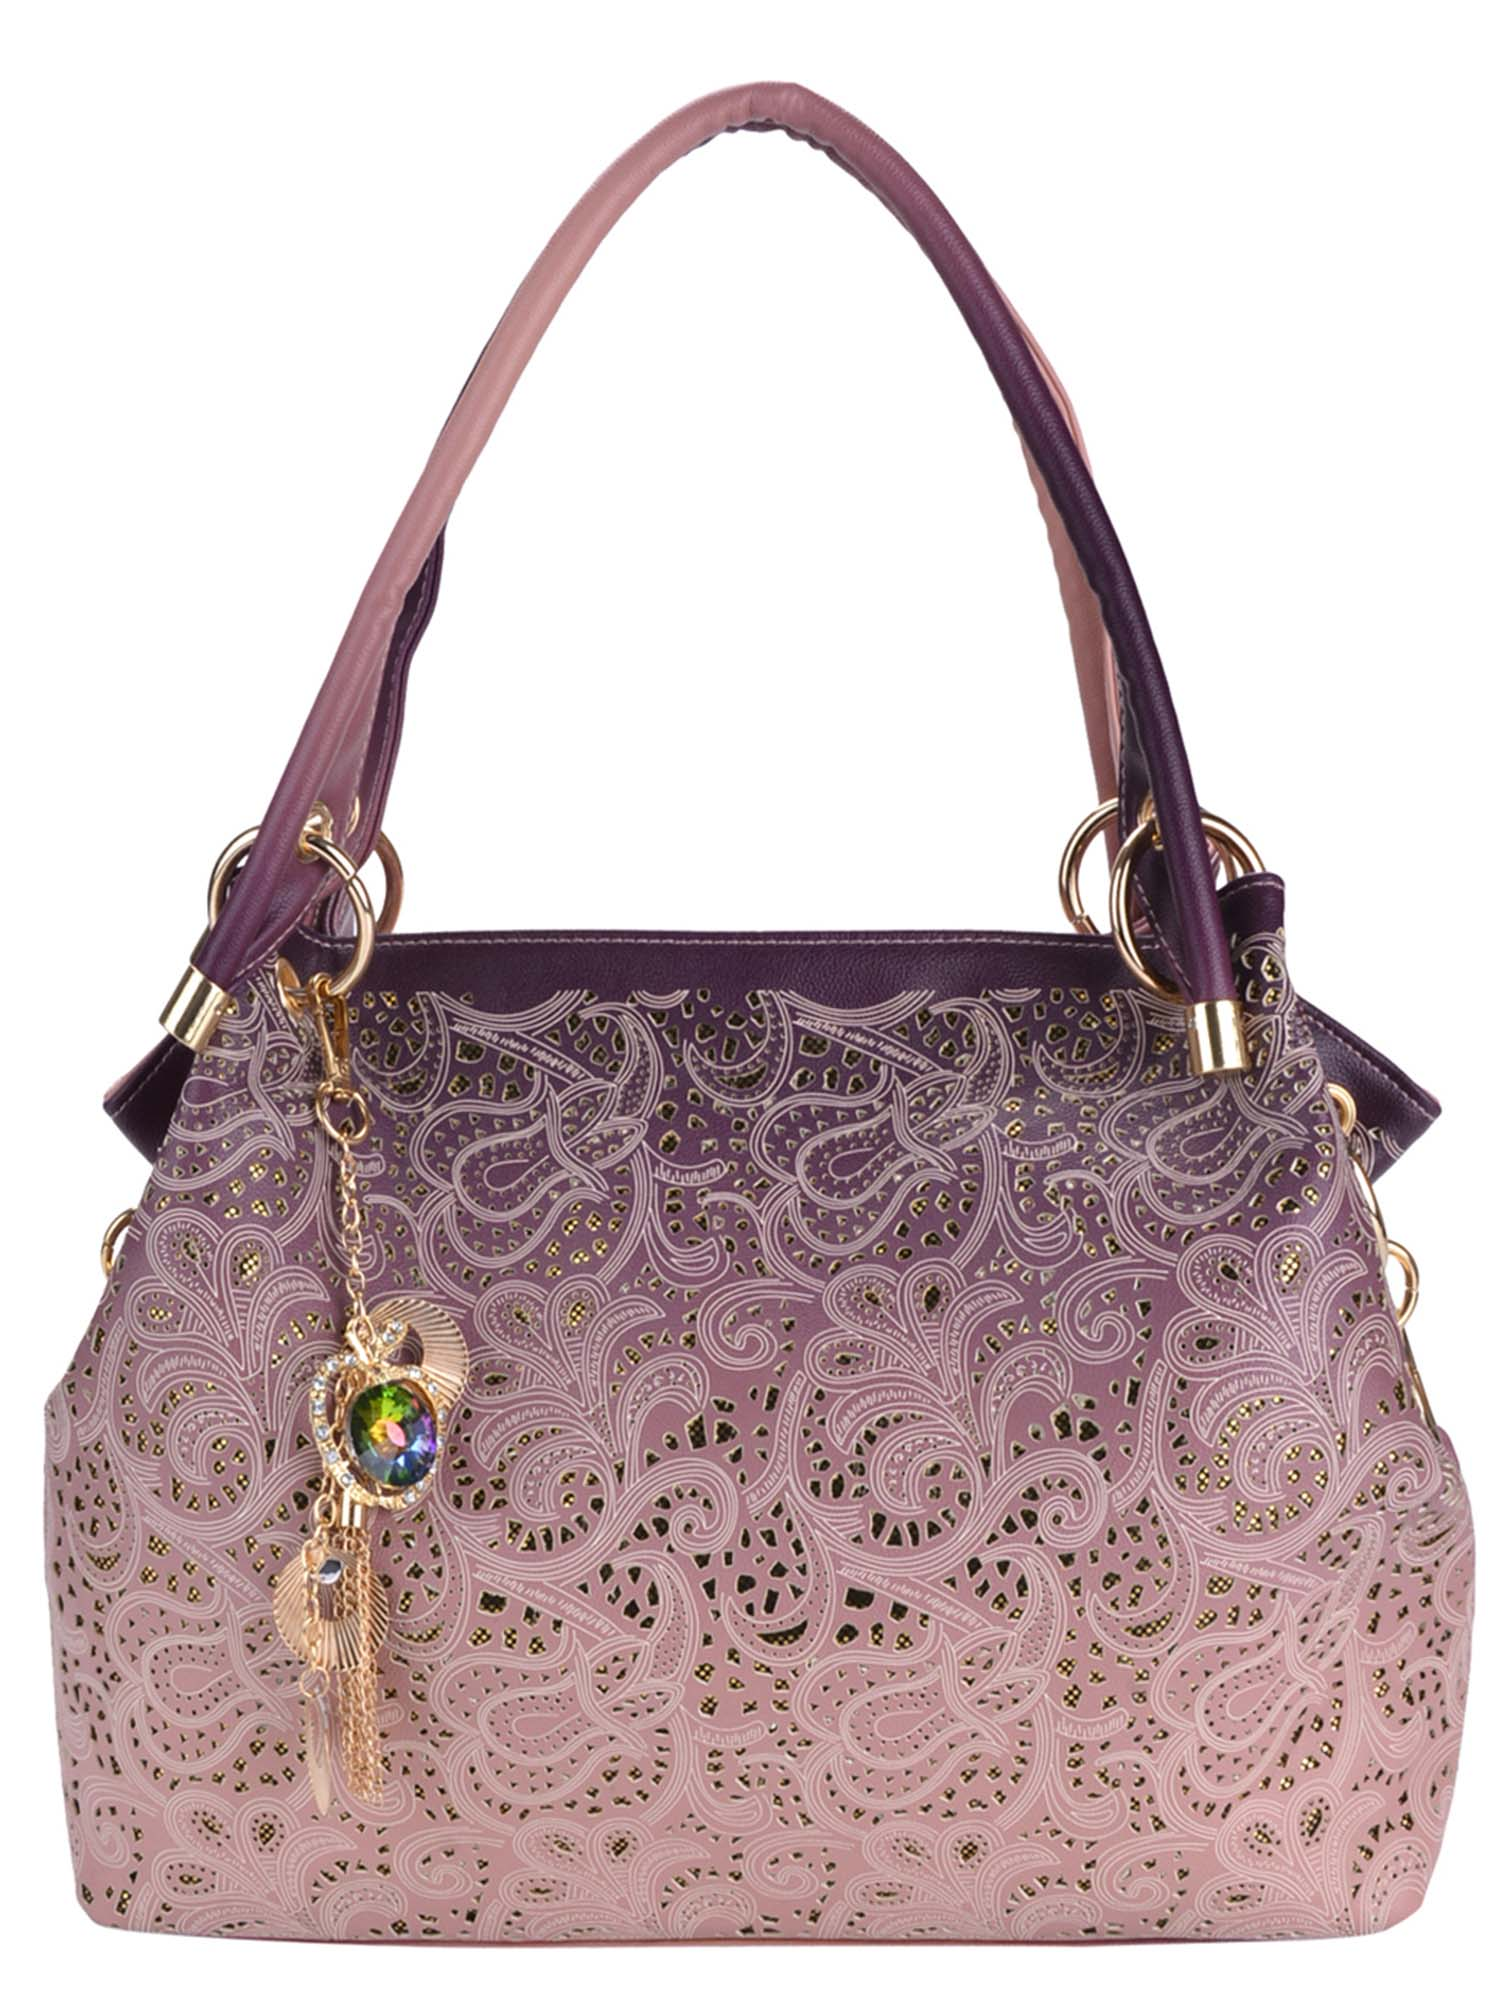 Womens Leather Shoulder Messenger Bags Handbags Purse Tote Hobo Bags Hollow out